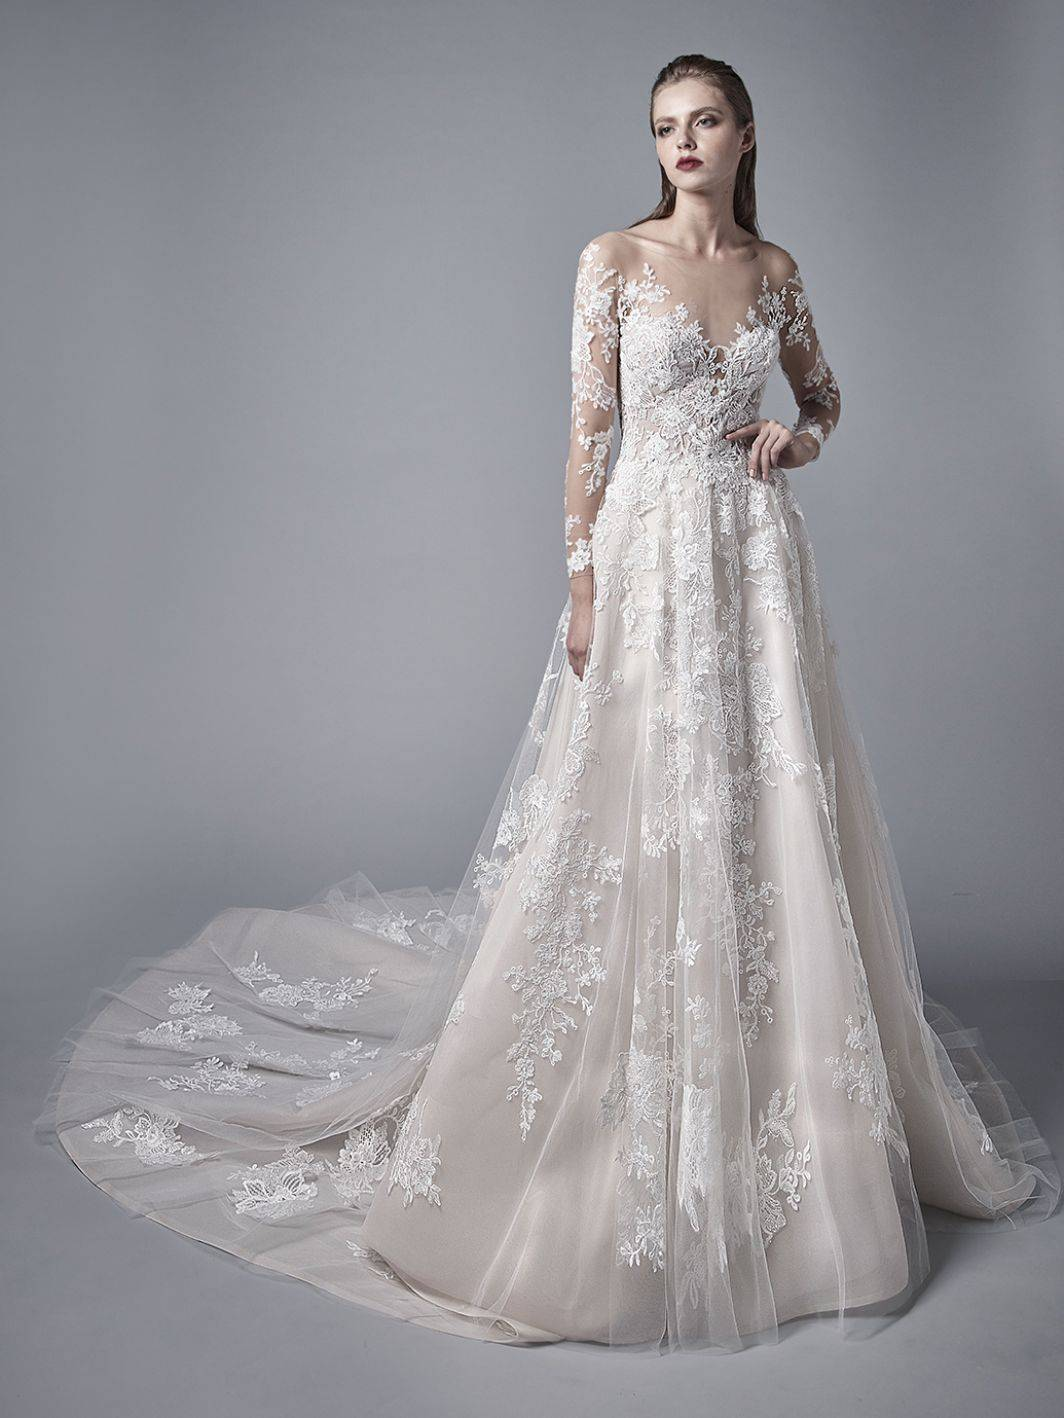 ENZOANI LYSANDRA WEDDING DRESS